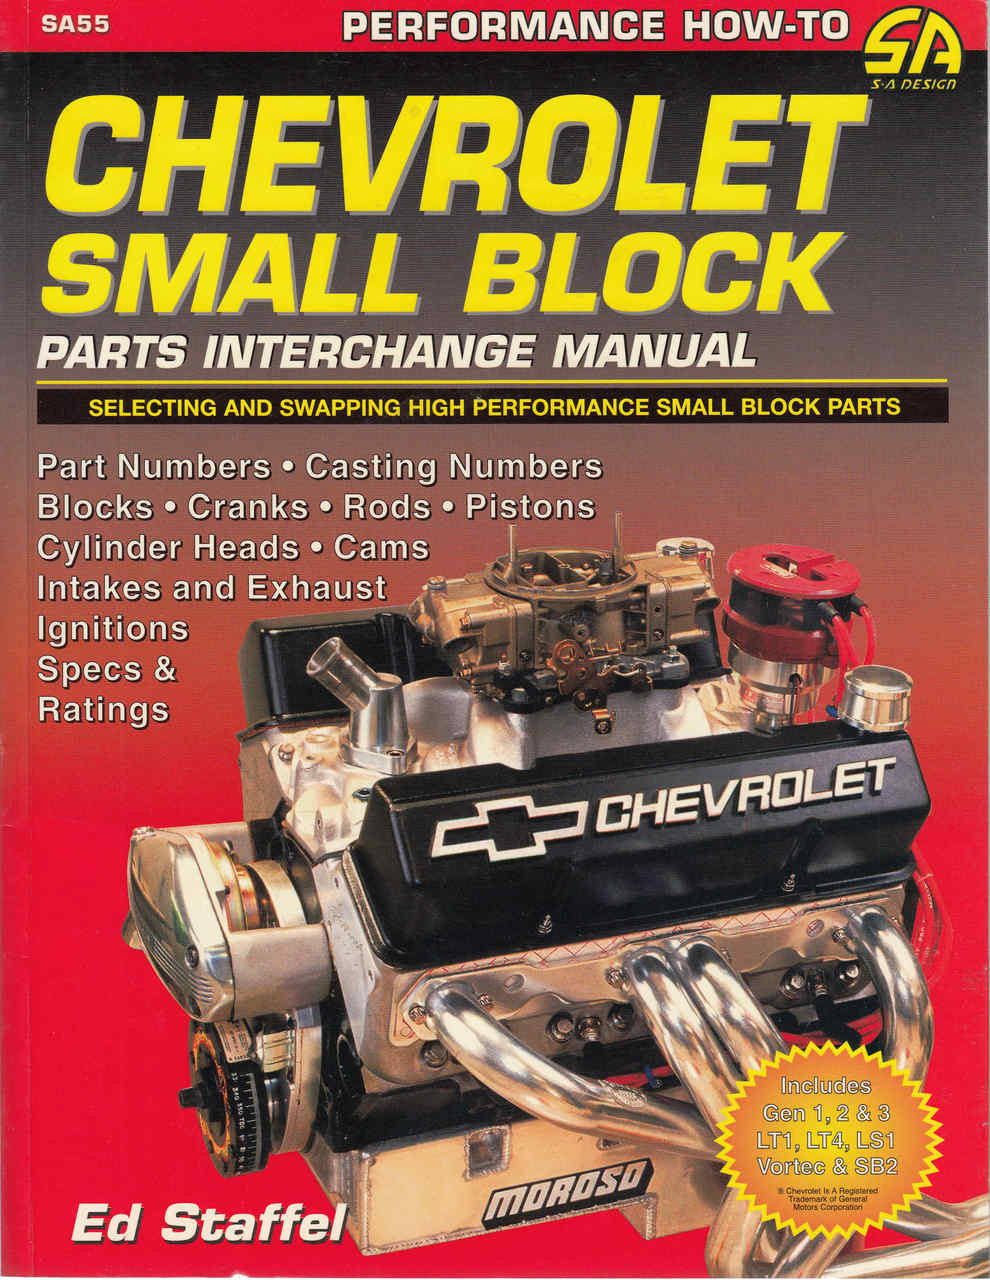 Chevy Small-Block Parts Interchange Manual - 1997 1st Edition